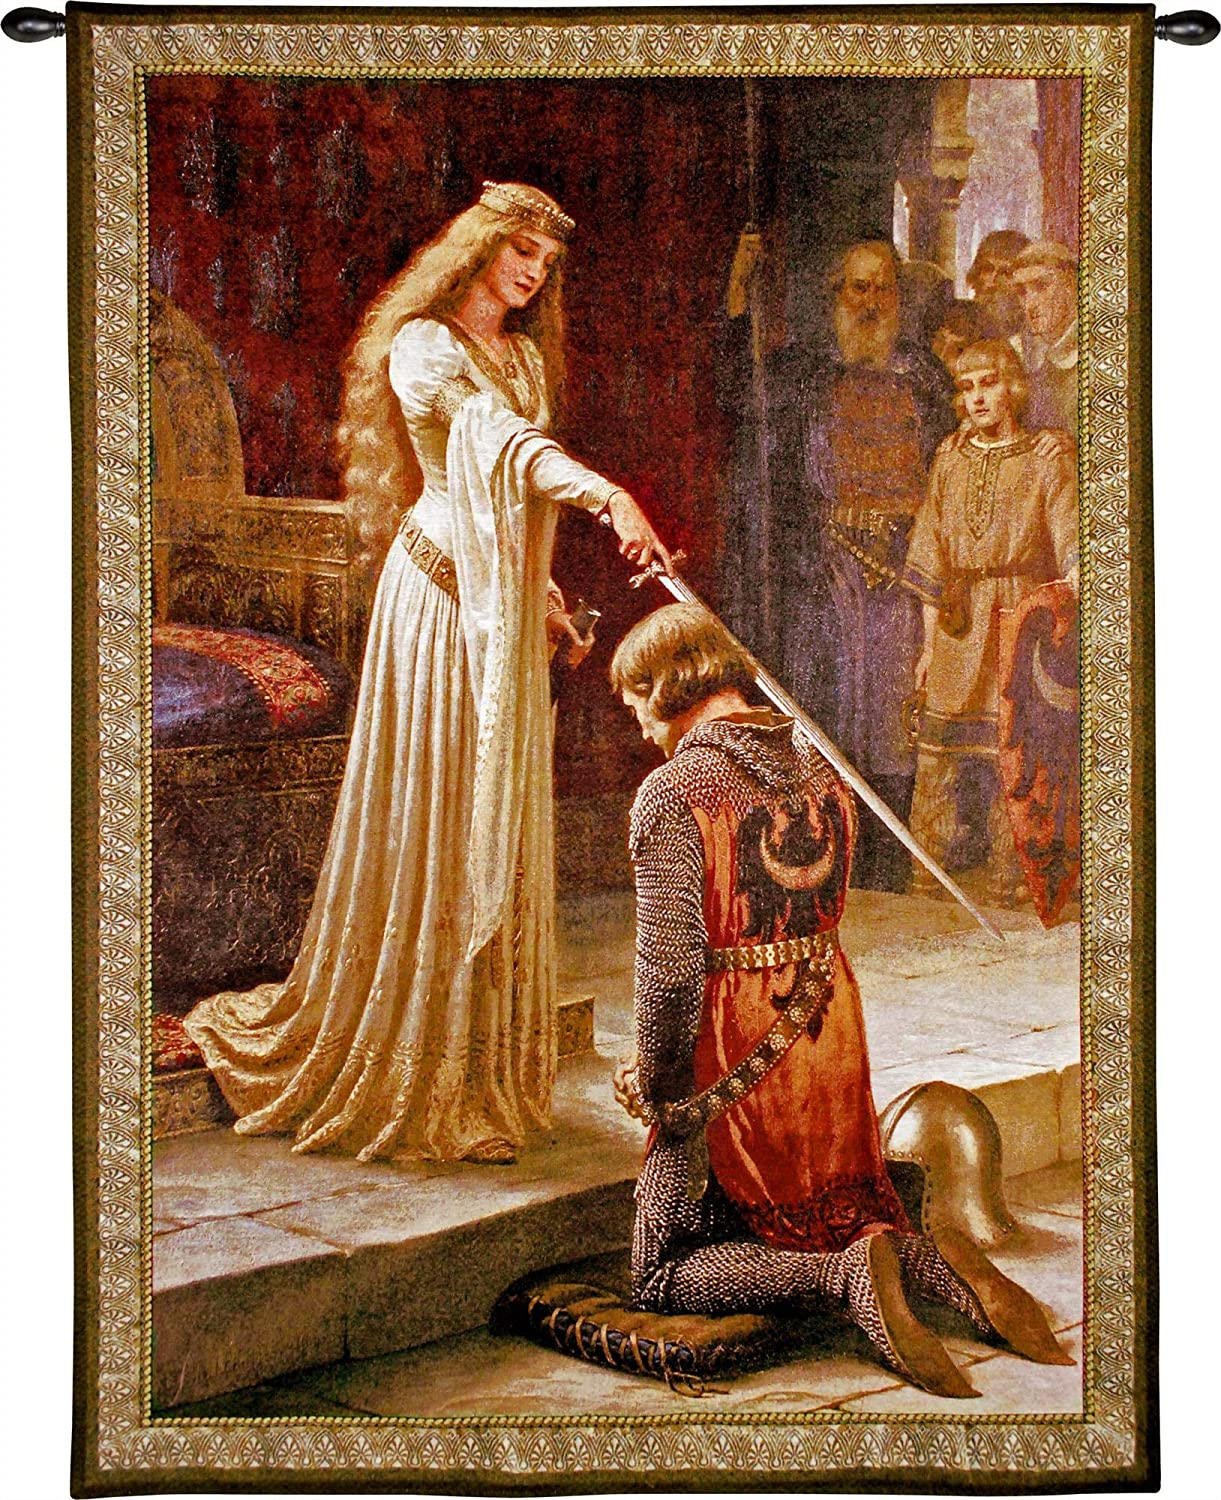 The Accolade by Edmund Blair Leighton | Woven Tapestry Wall Art Hanging | Medieval Romantic Renaissance Masterpiece | 100% Cotton USA Size 40x31